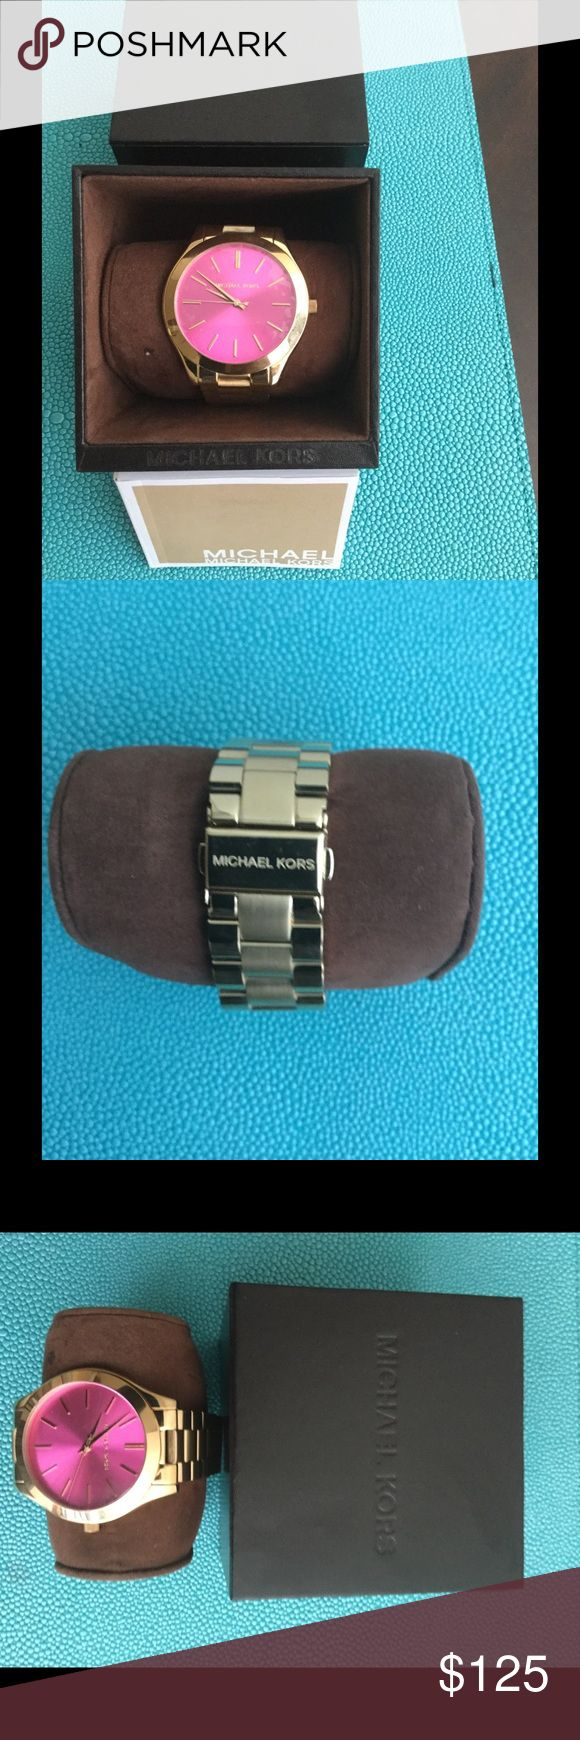 Michael Kors Watch Michael Kors big face watch - pink. Brand new. Never worn. Still in original package. Watch strap is easily adjusted to fit by removing links. Face has original plastic still on for protection. Michael Kors Accessories Watches